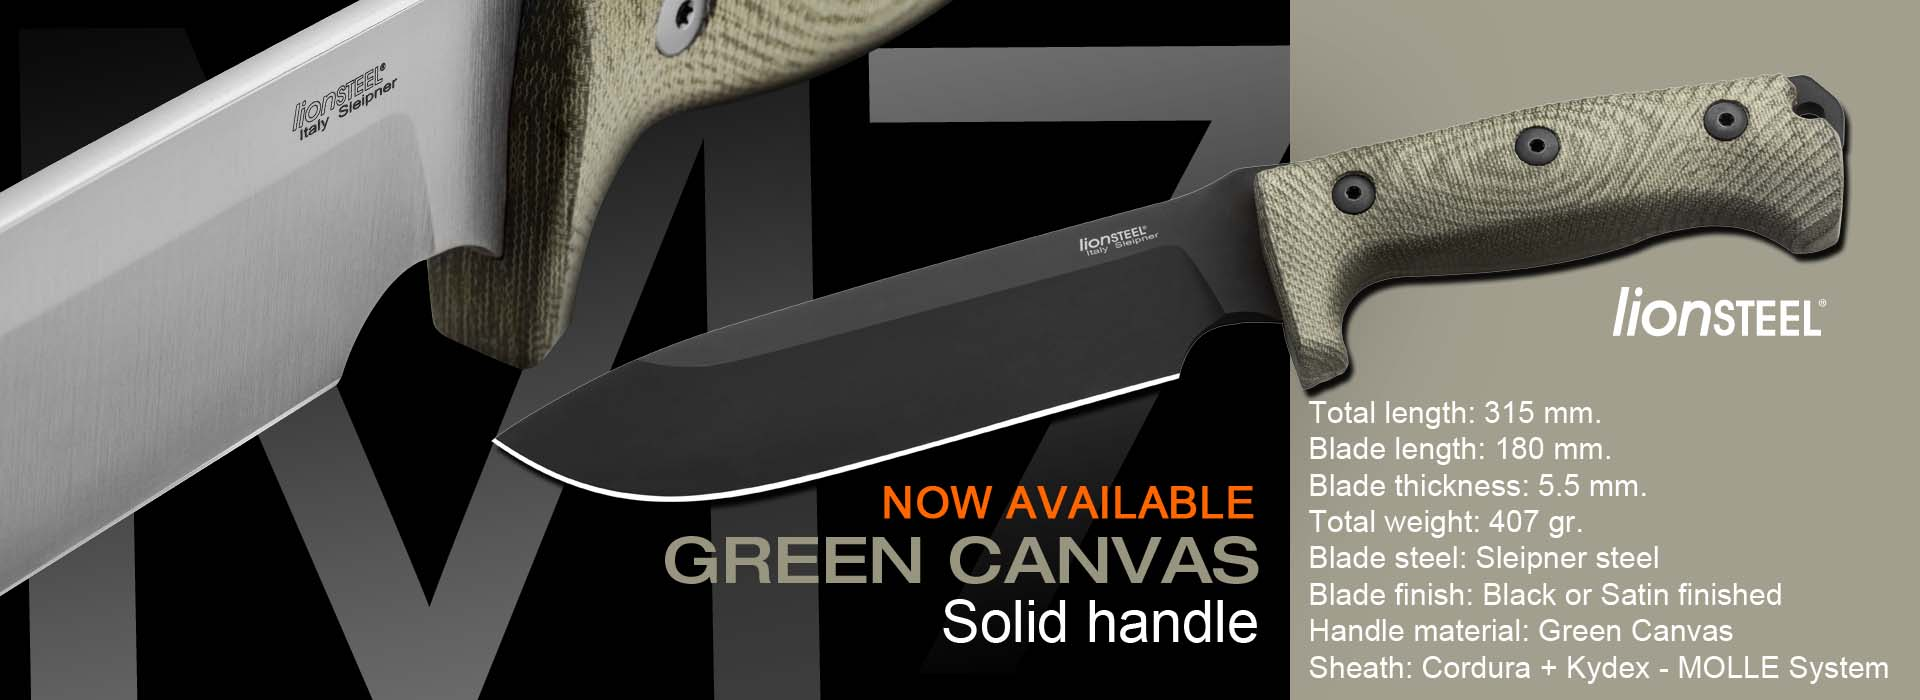 M7 green canvas